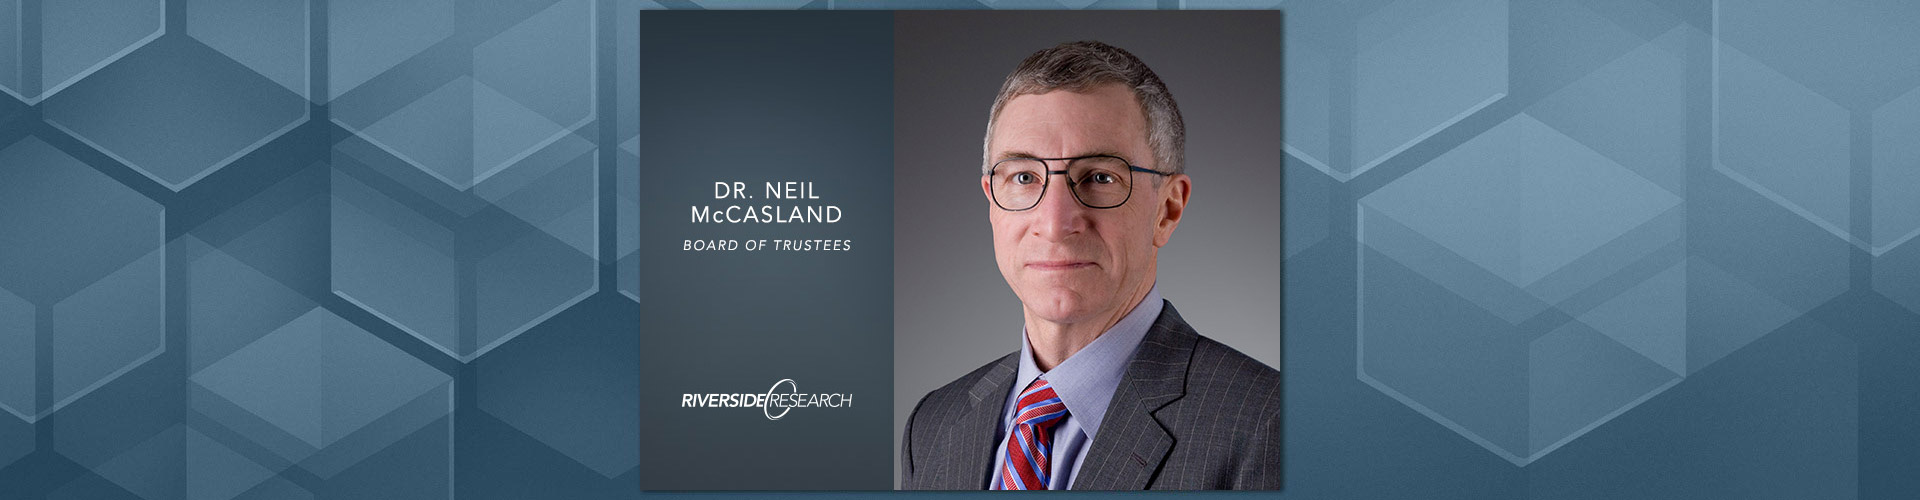 Welcome to our Board of Trustees, Dr. Neil McCasland